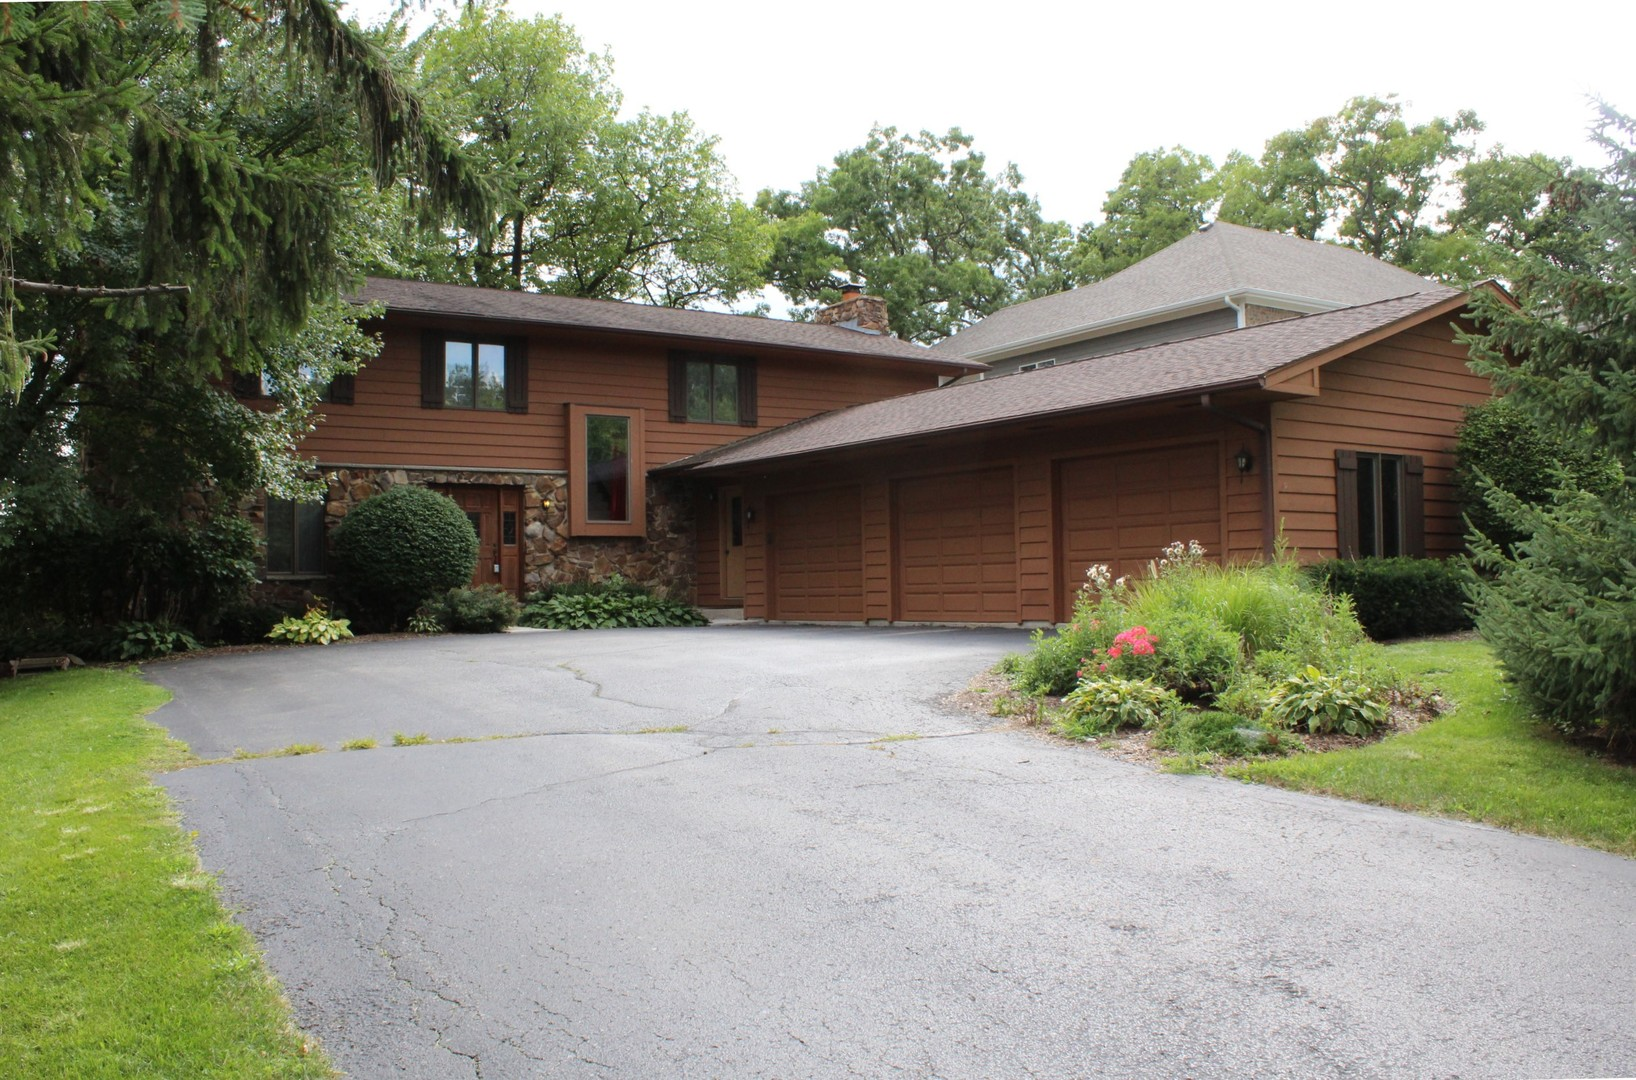 399 Lois Lane, Lake Zurich, IL 60047